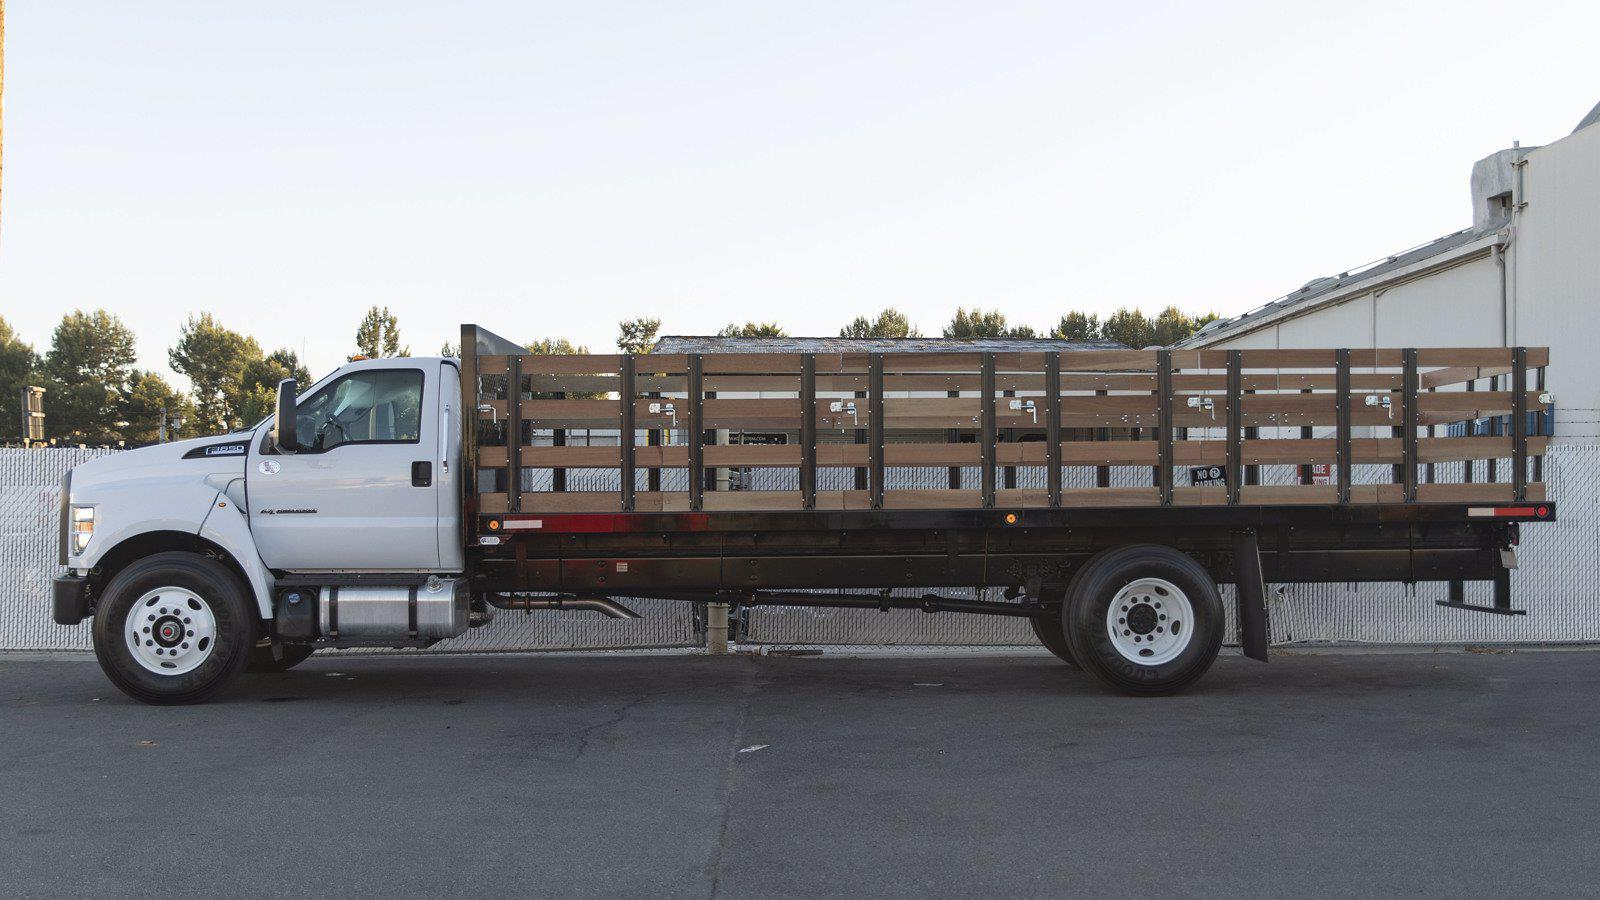 2022 Ford F-650 Regular Cab DRW 4x2, Enoven Stake Bed #220004 - photo 1